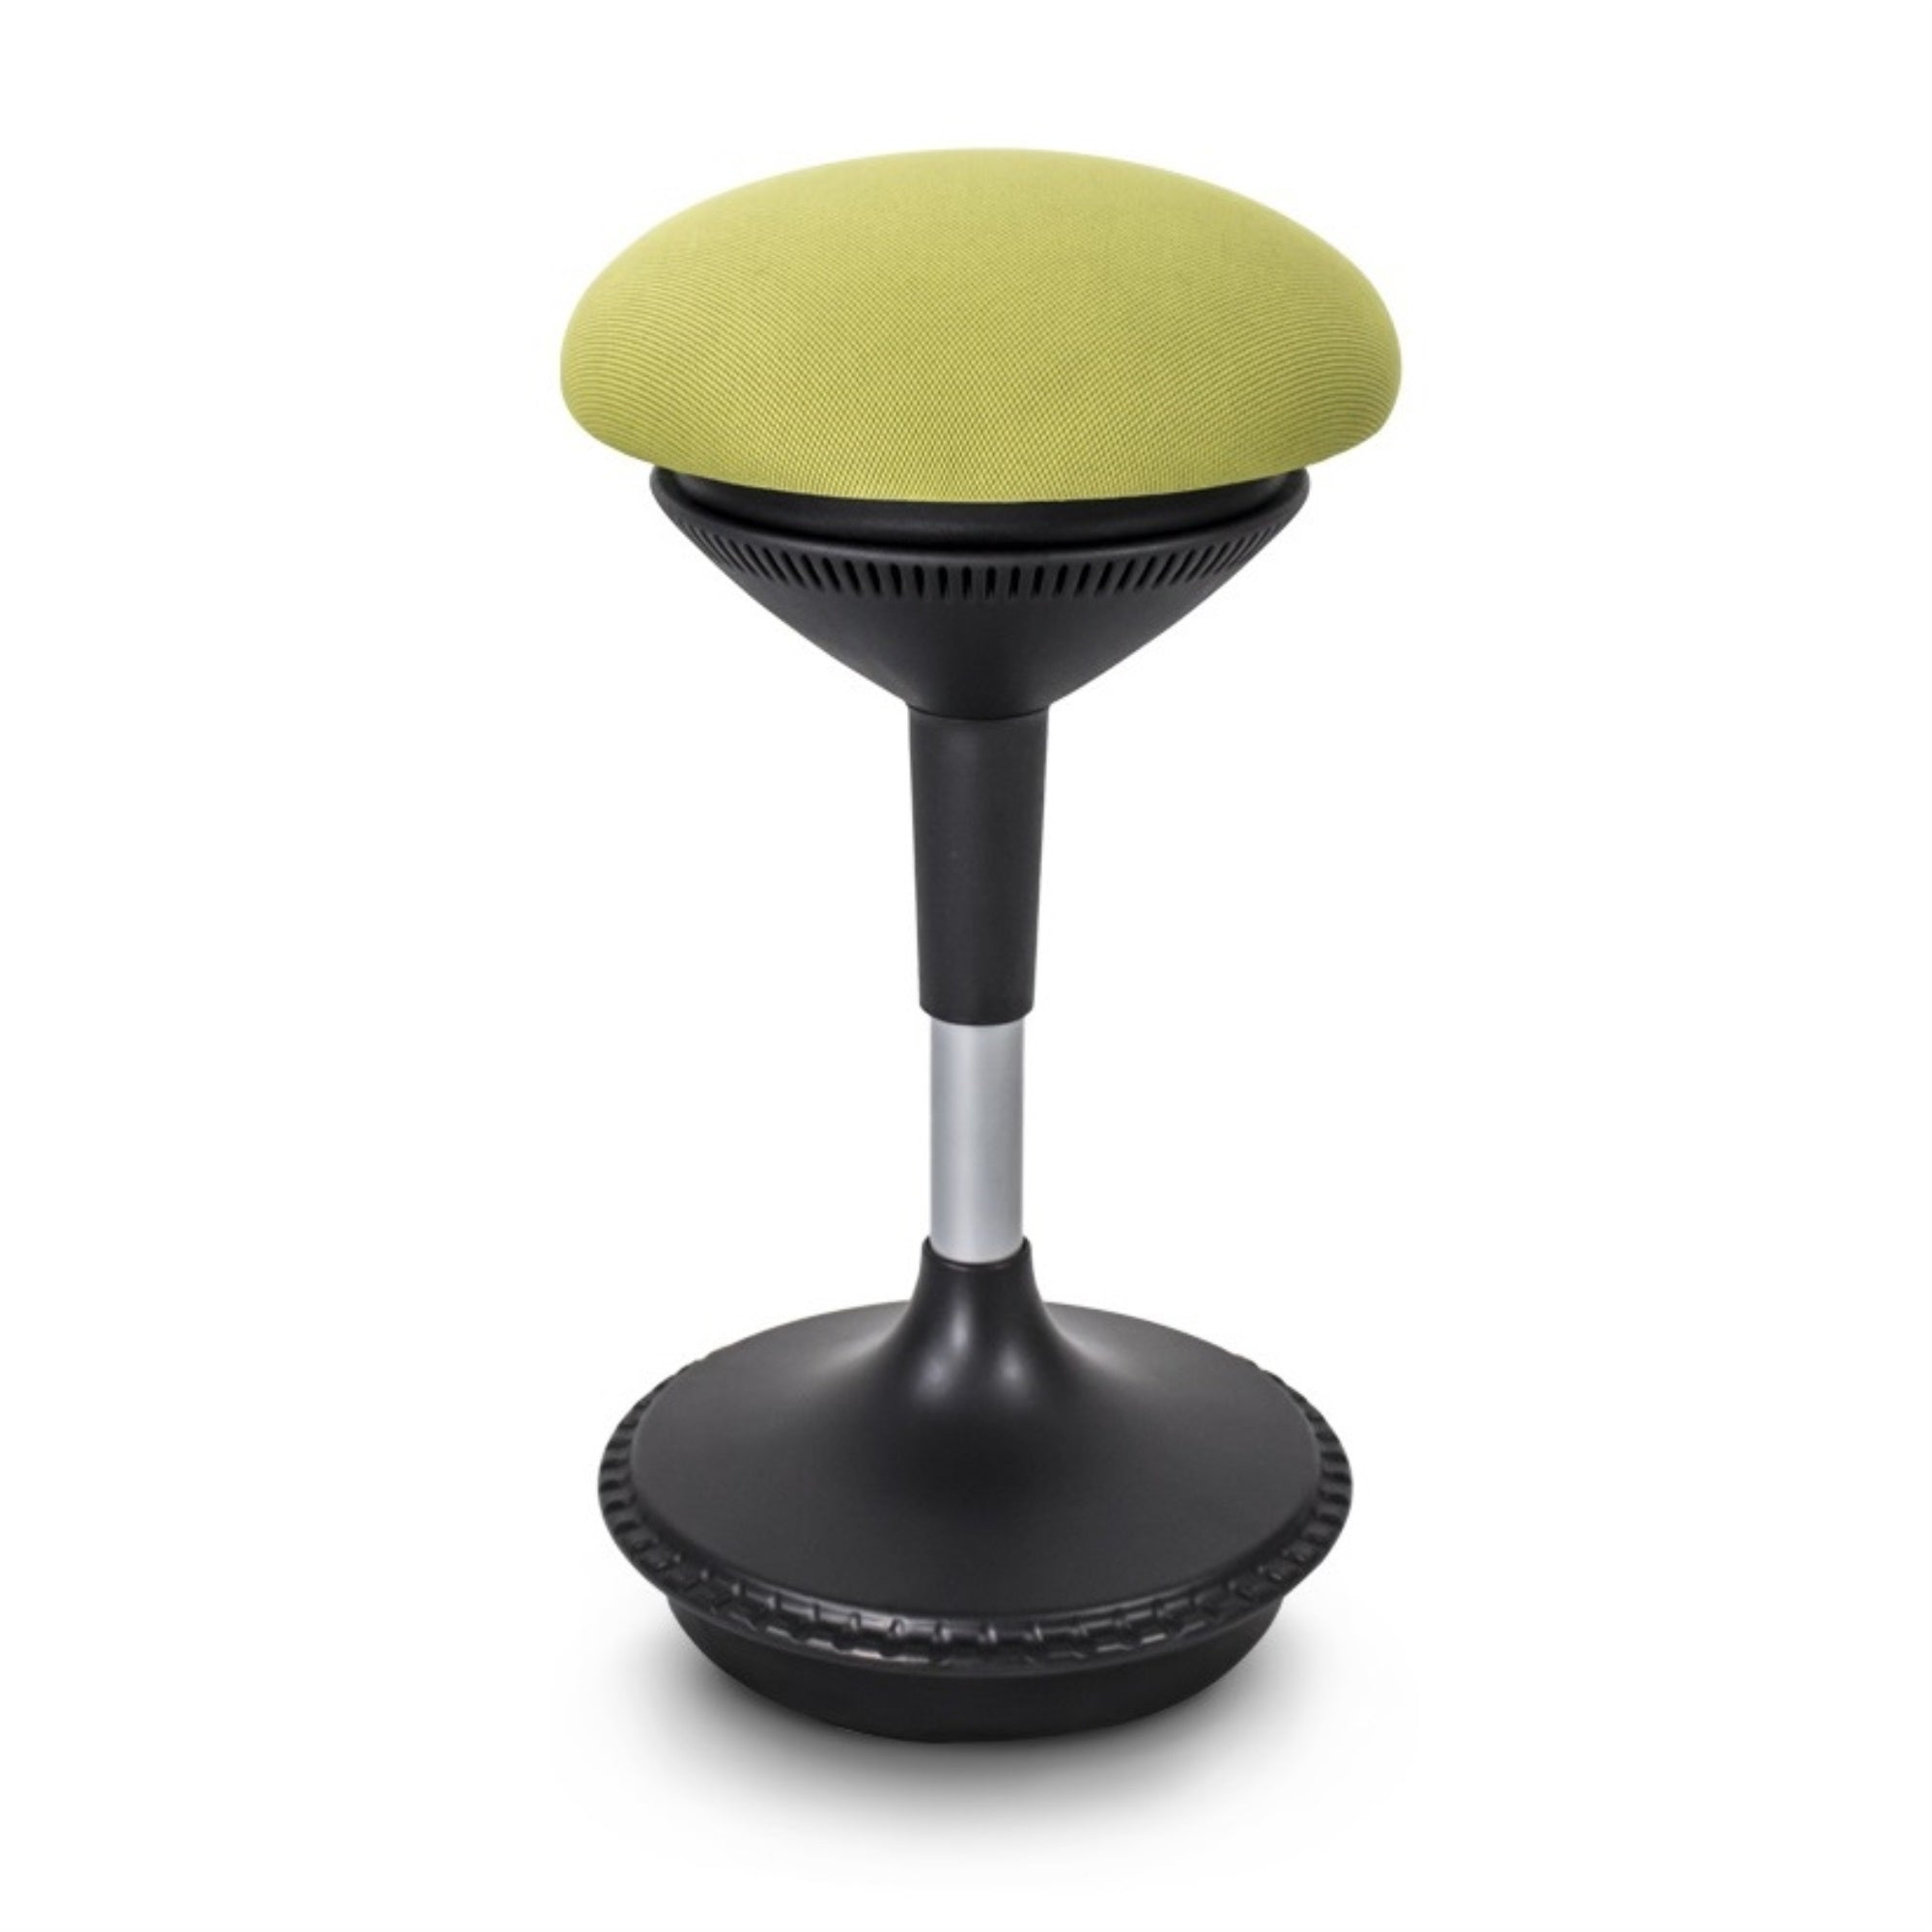 Green Mushroom Adjustable Height Office ErgoStool